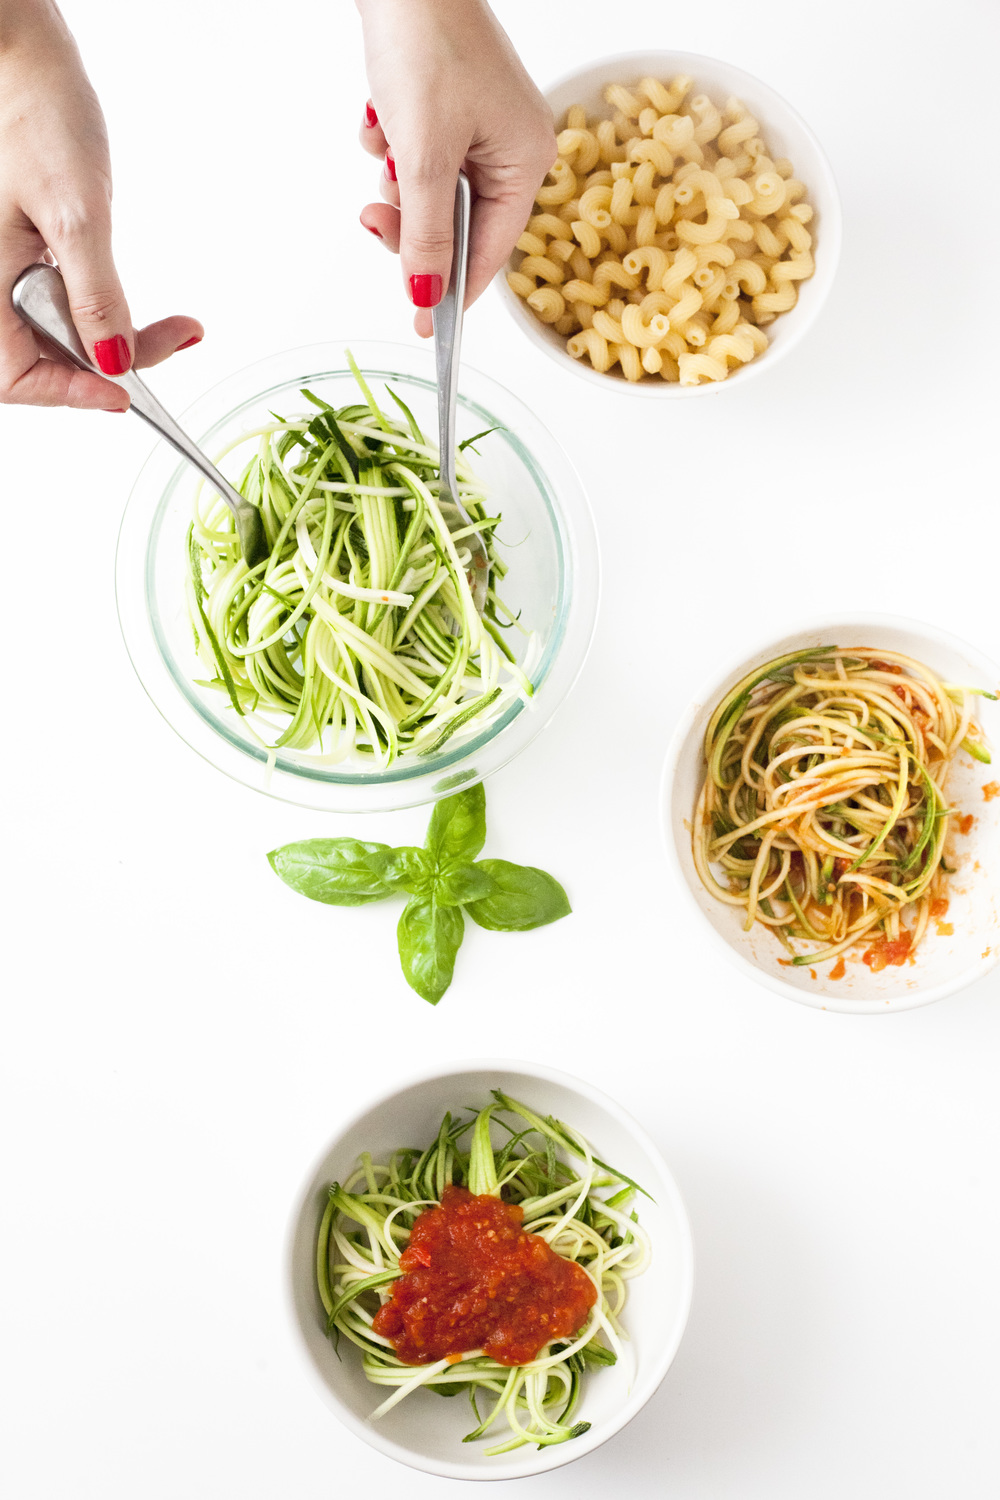 How to Make Zucchini Noodles without a Spiralizer: Zucchini Noodle Recipe